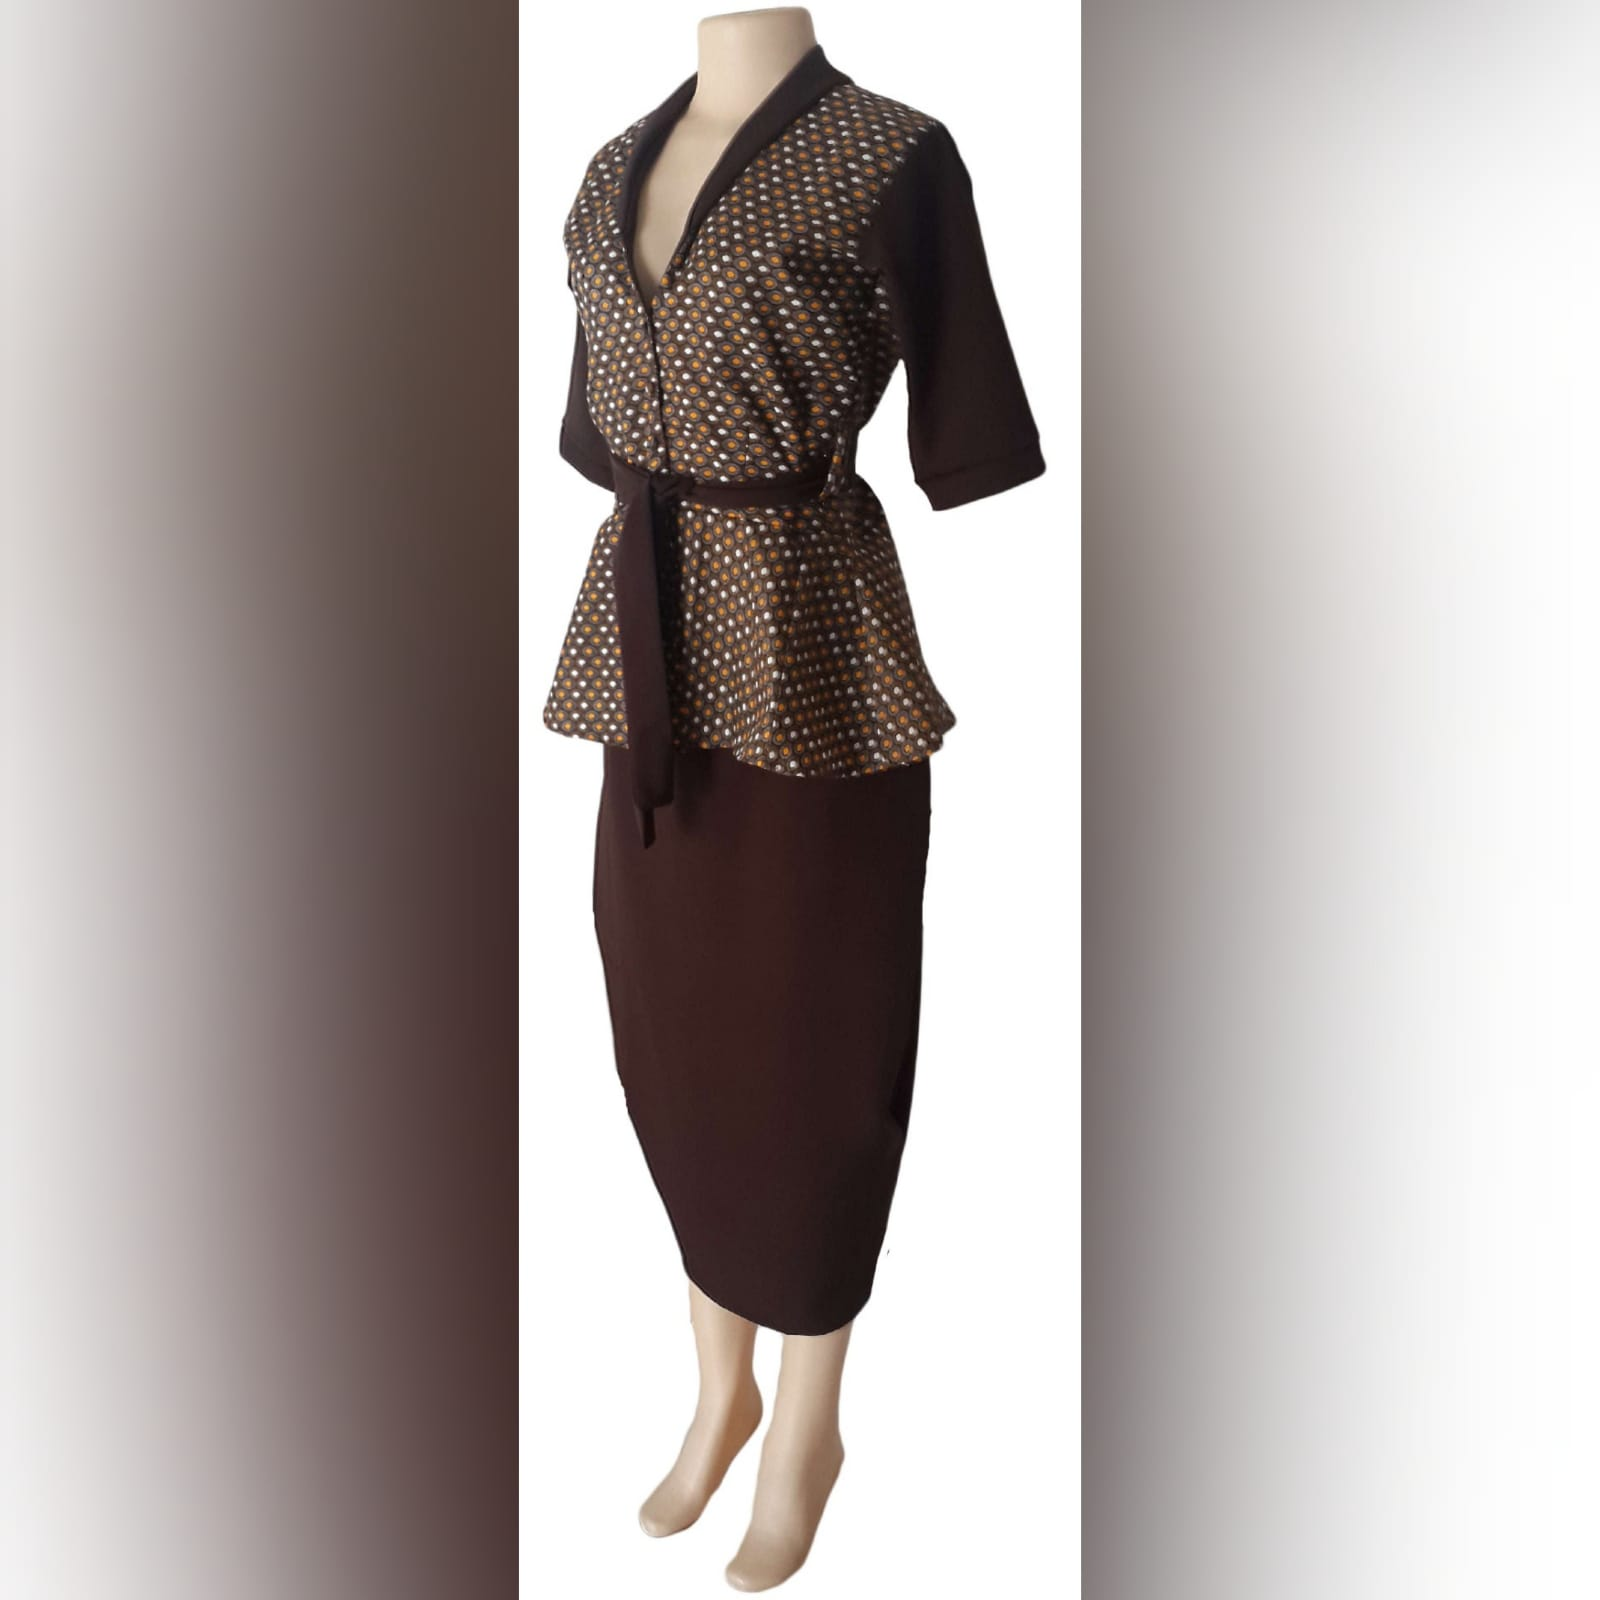 Xhosa traditional wear blouse and matching brown pencil skirt 2 a pencil skirt below the knee with a back slit. With a xhosa traditional blouse. Blouse with sleeves, collar and belt in brown matching the skirt.